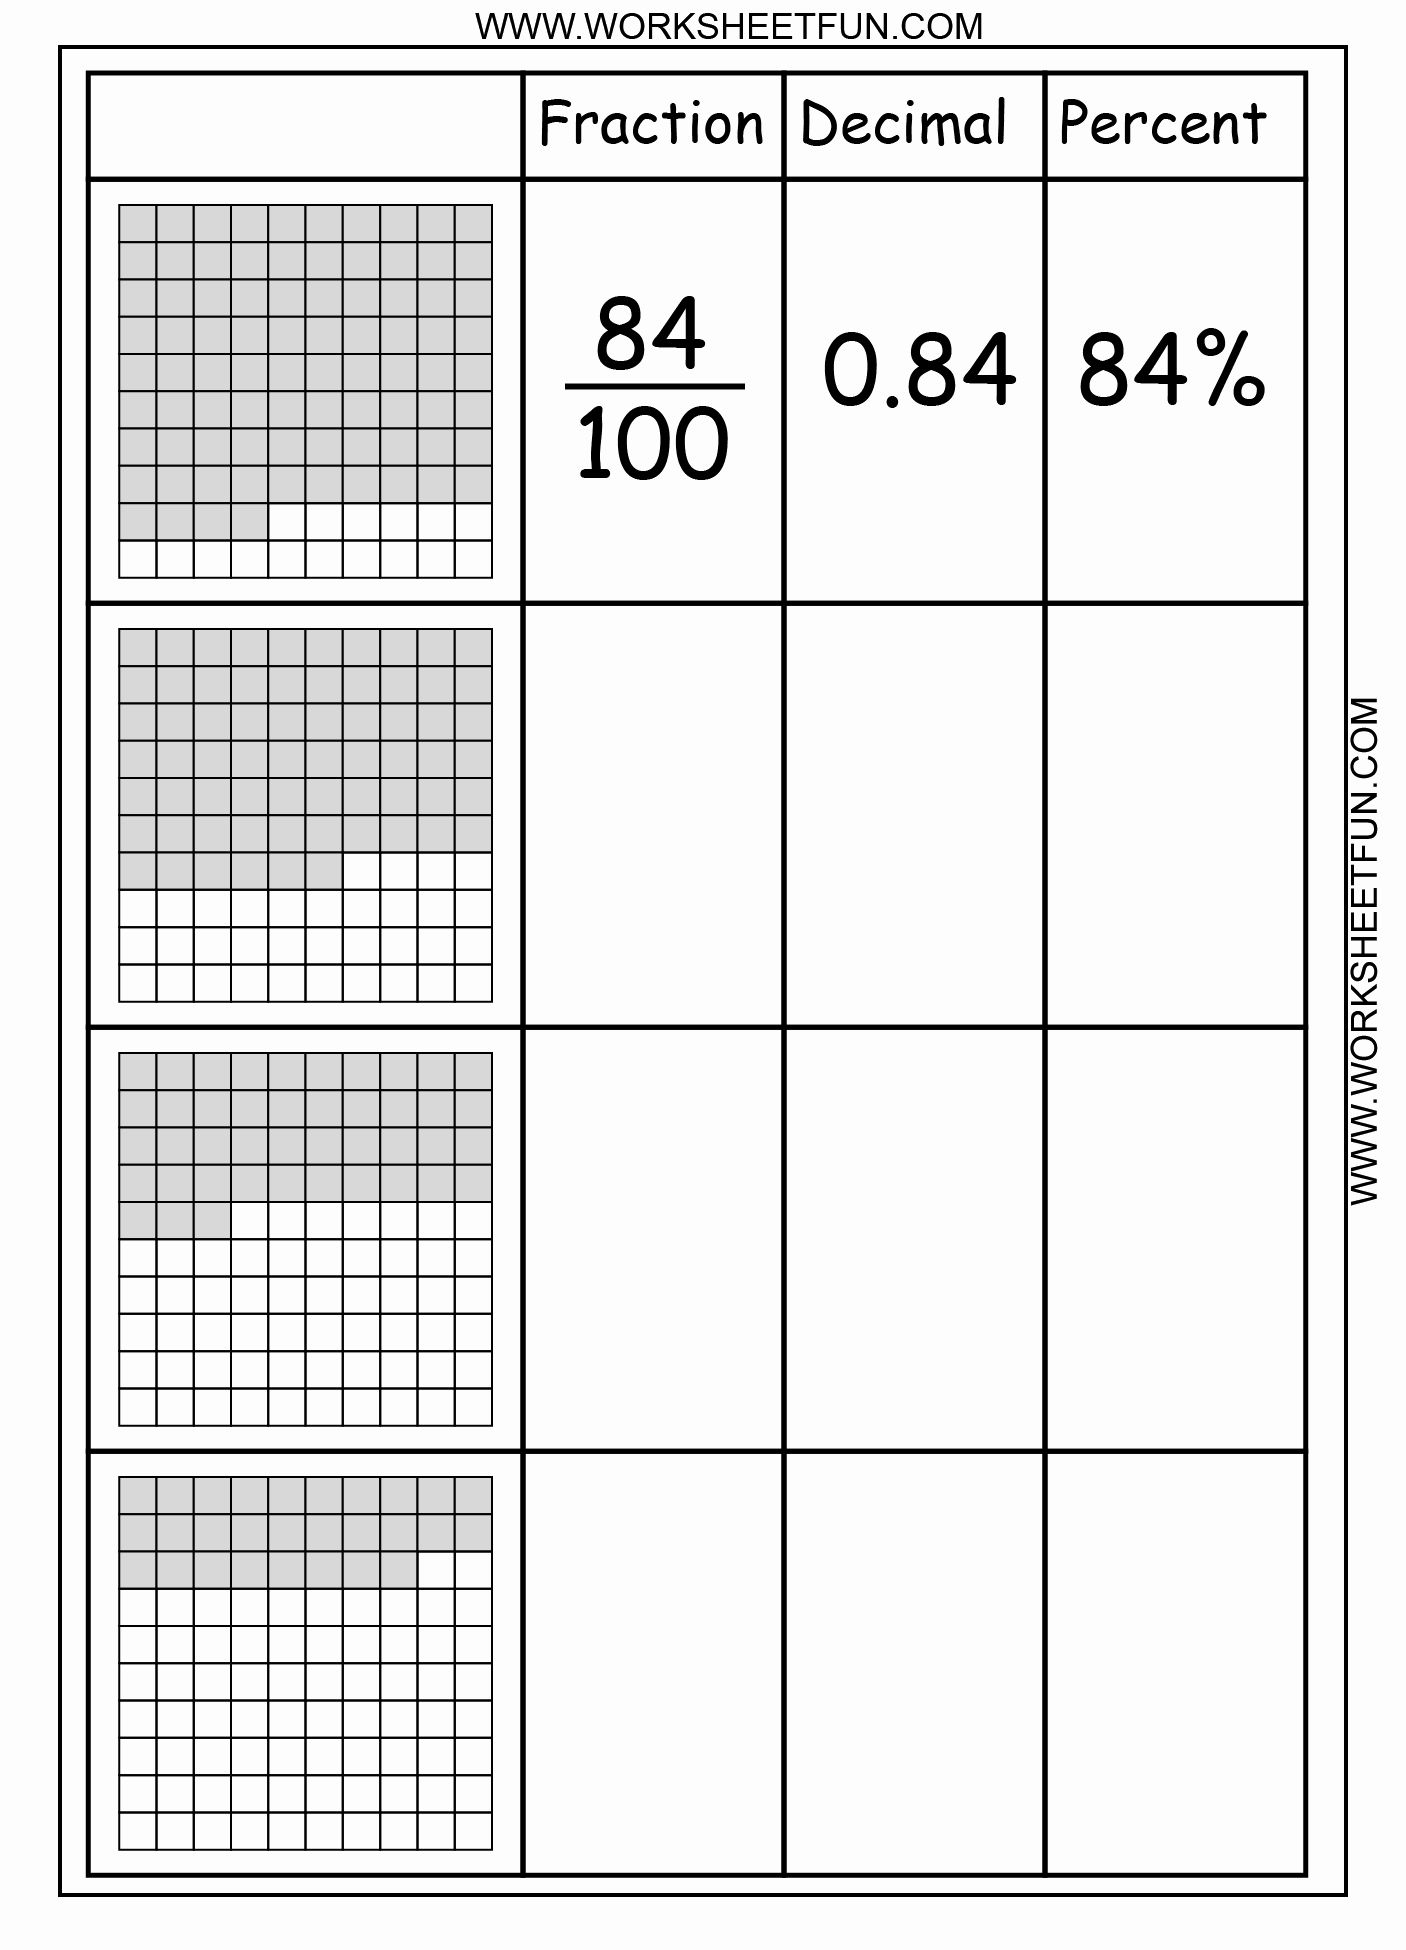 Fraction Decimal Percent Worksheet